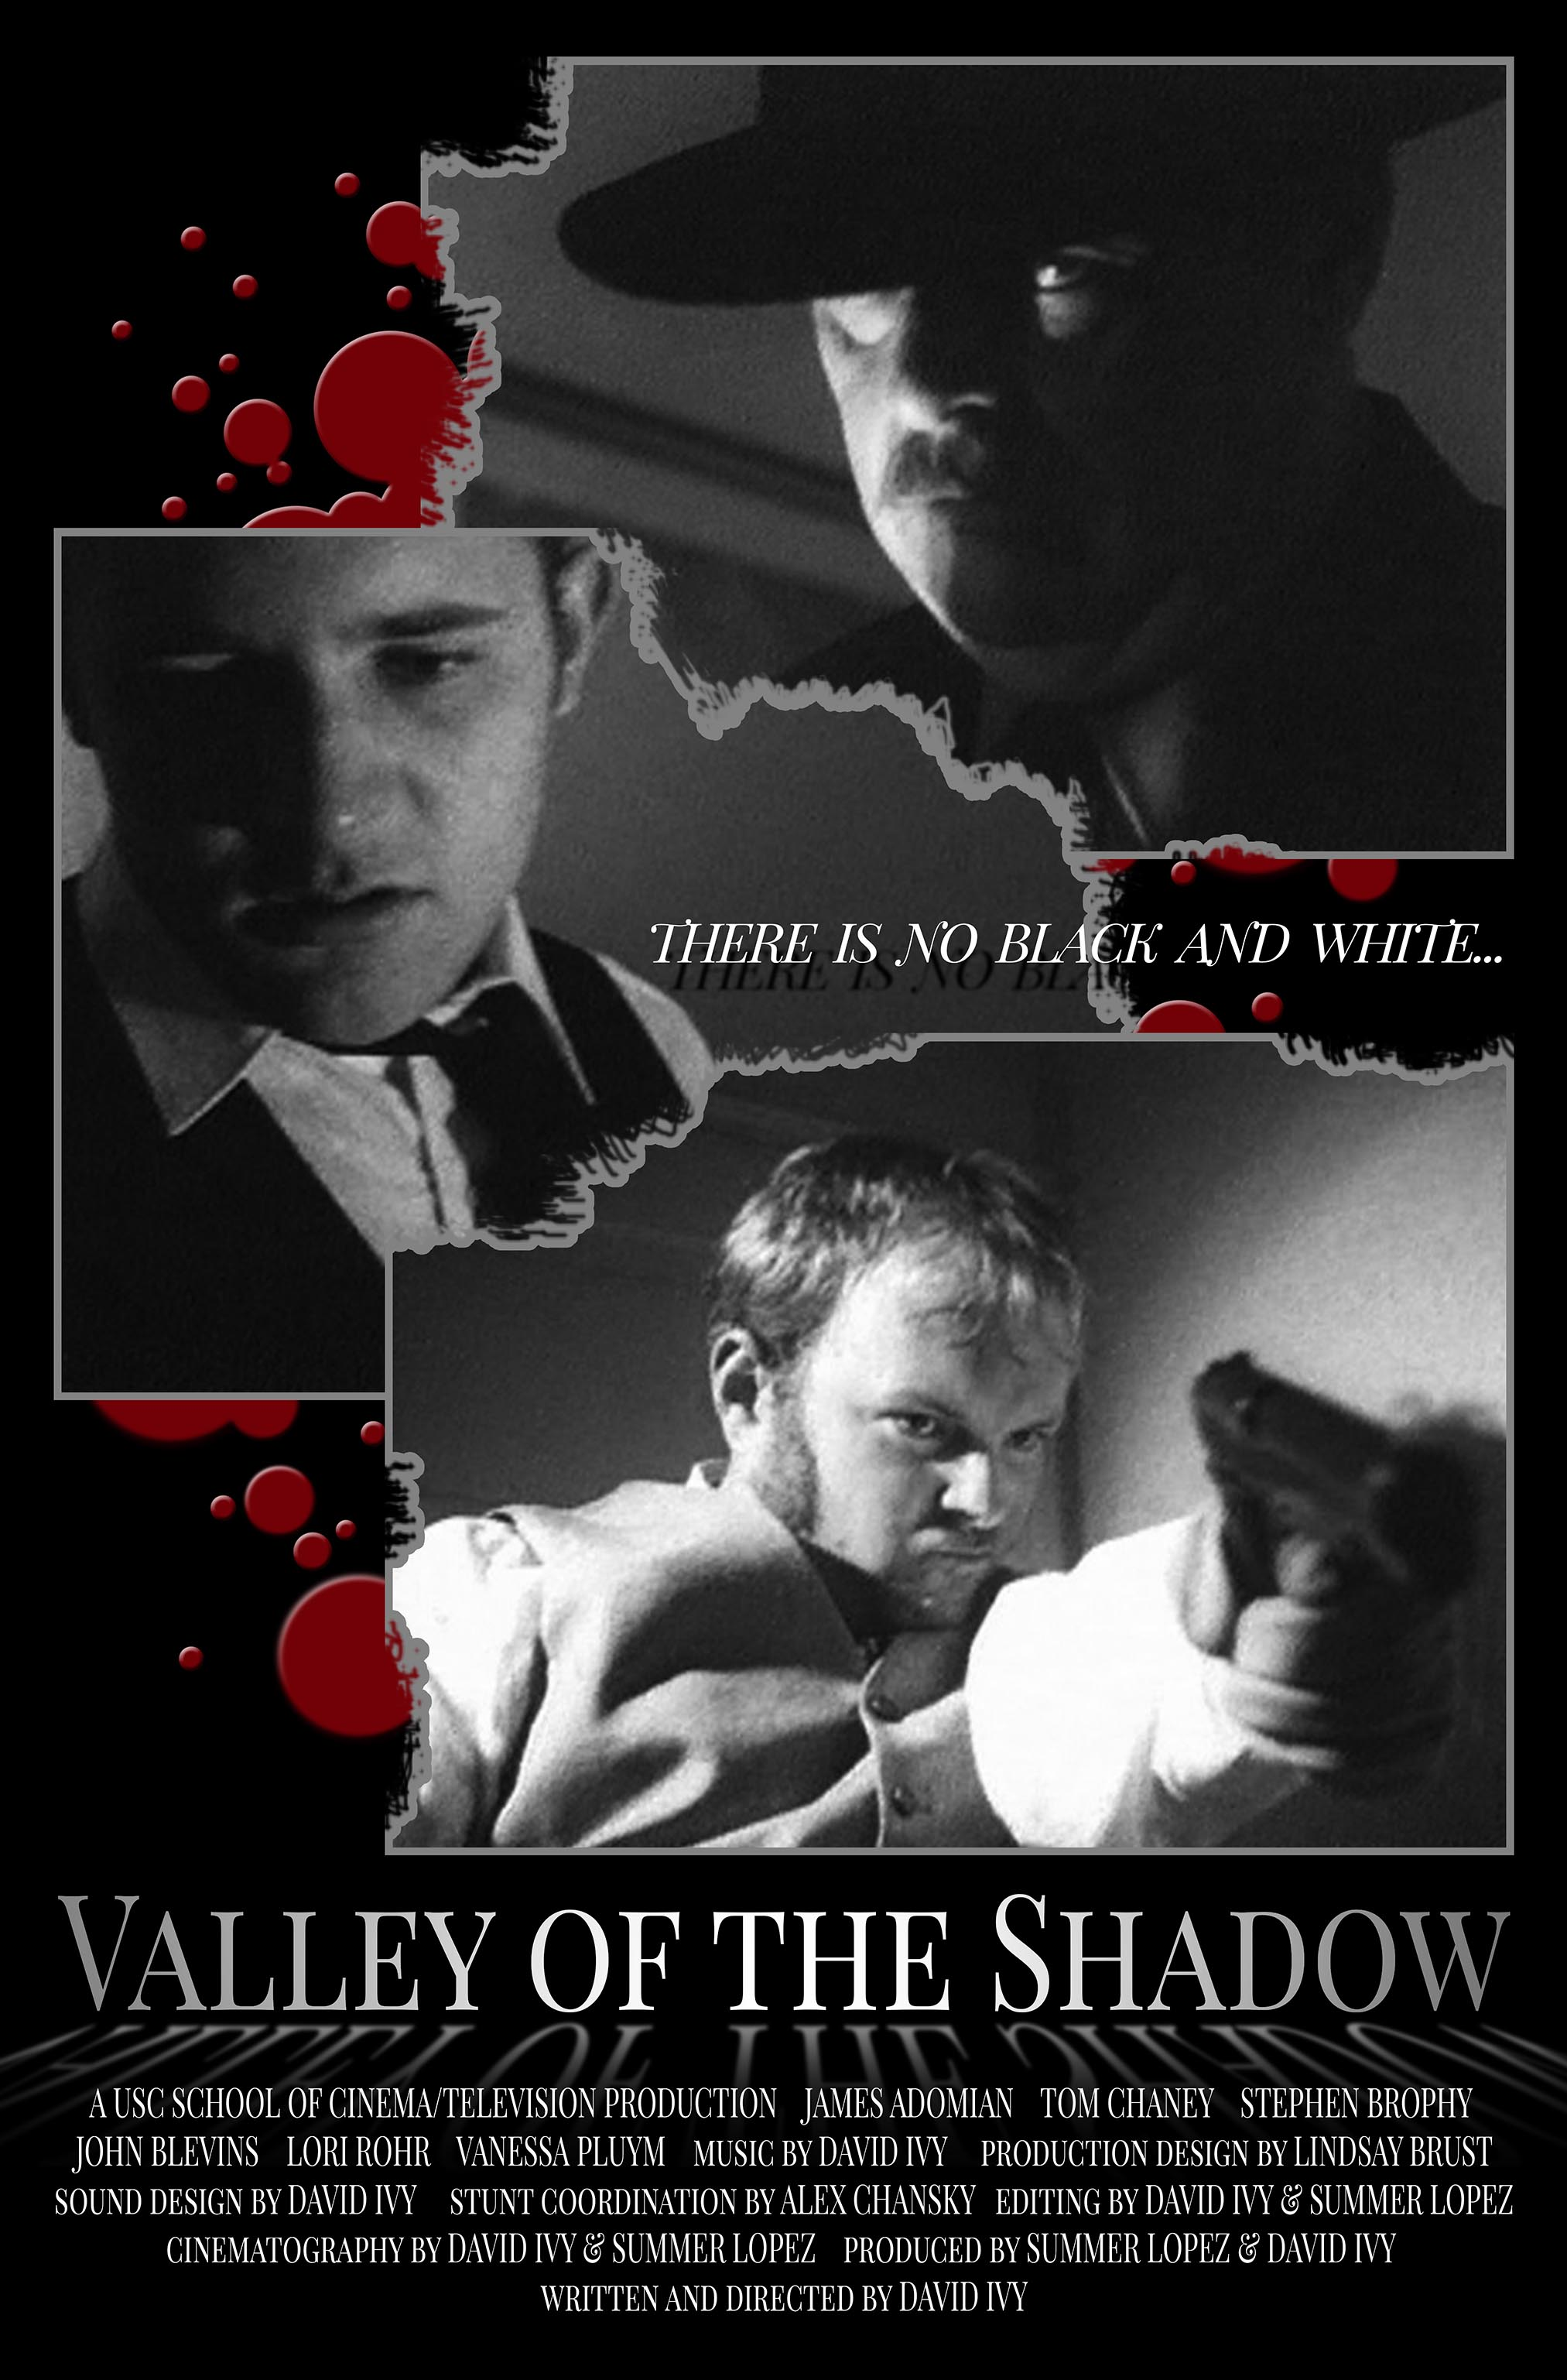 Valley of the Shadow - Poster [04_Q6]